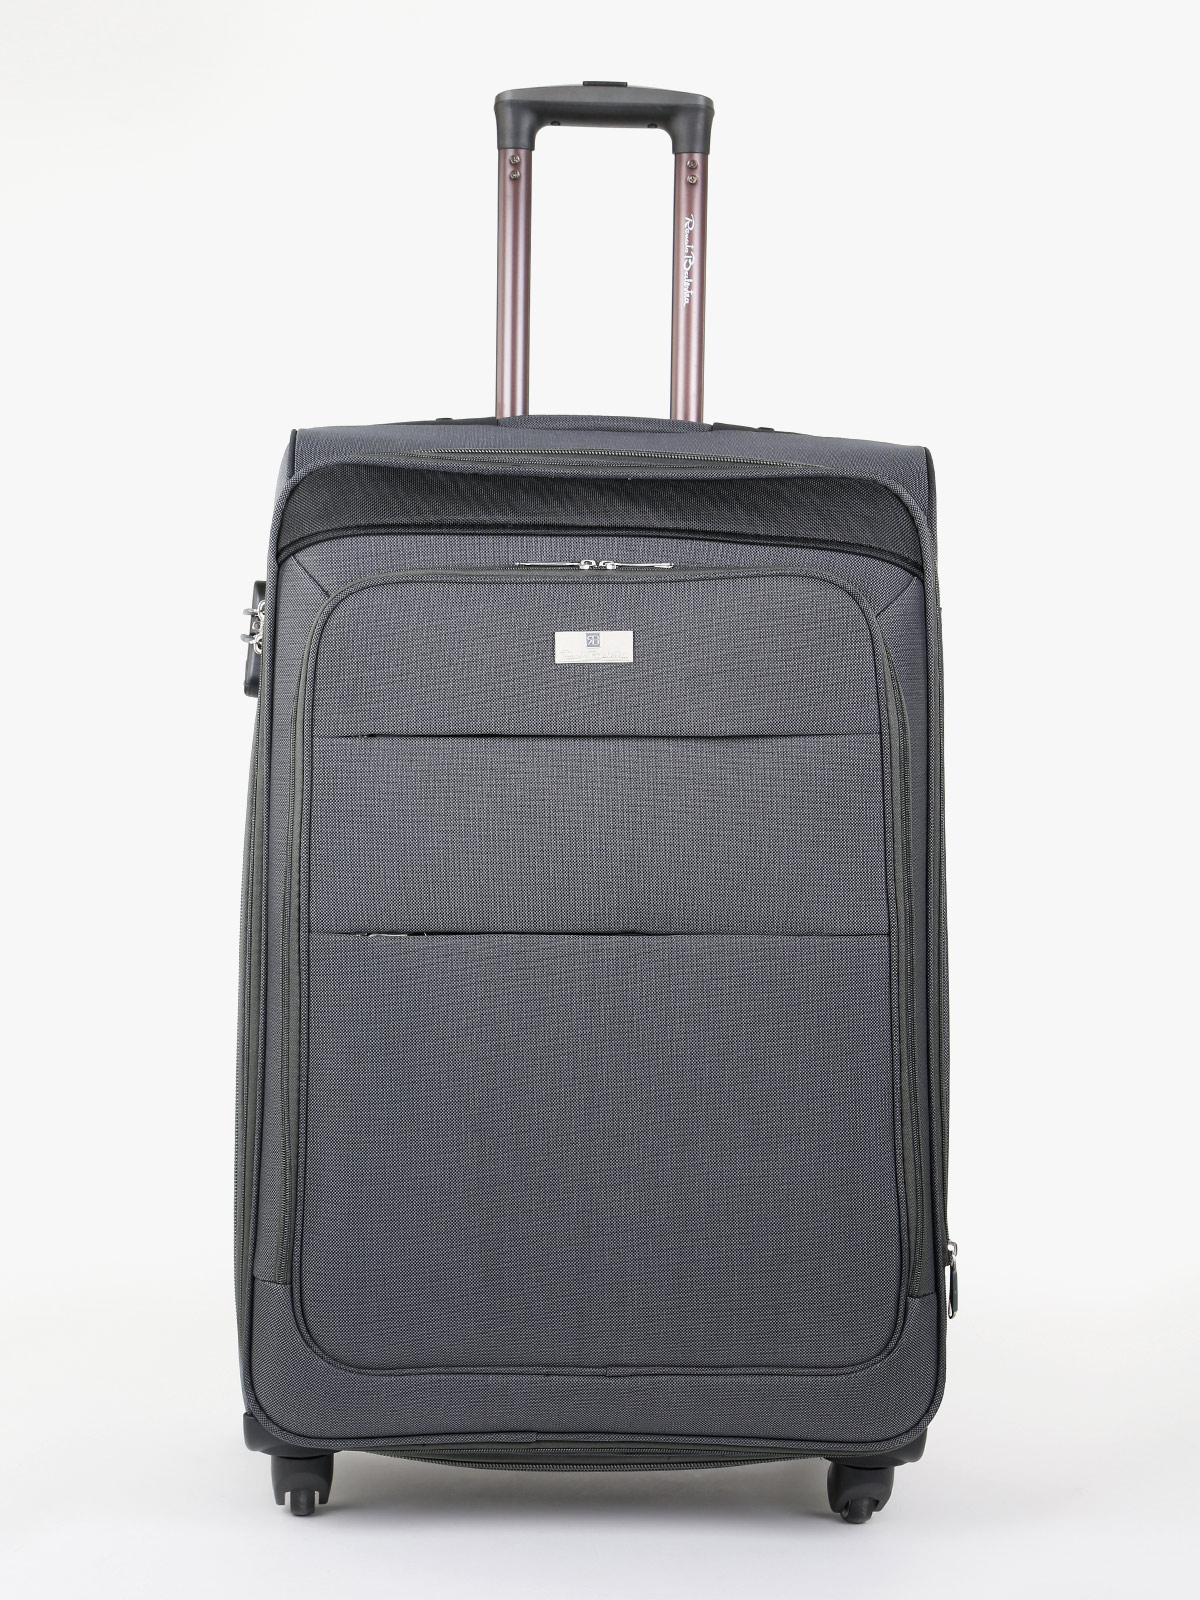 Suitcase Large 4 Wheels-77X48X34-Gray